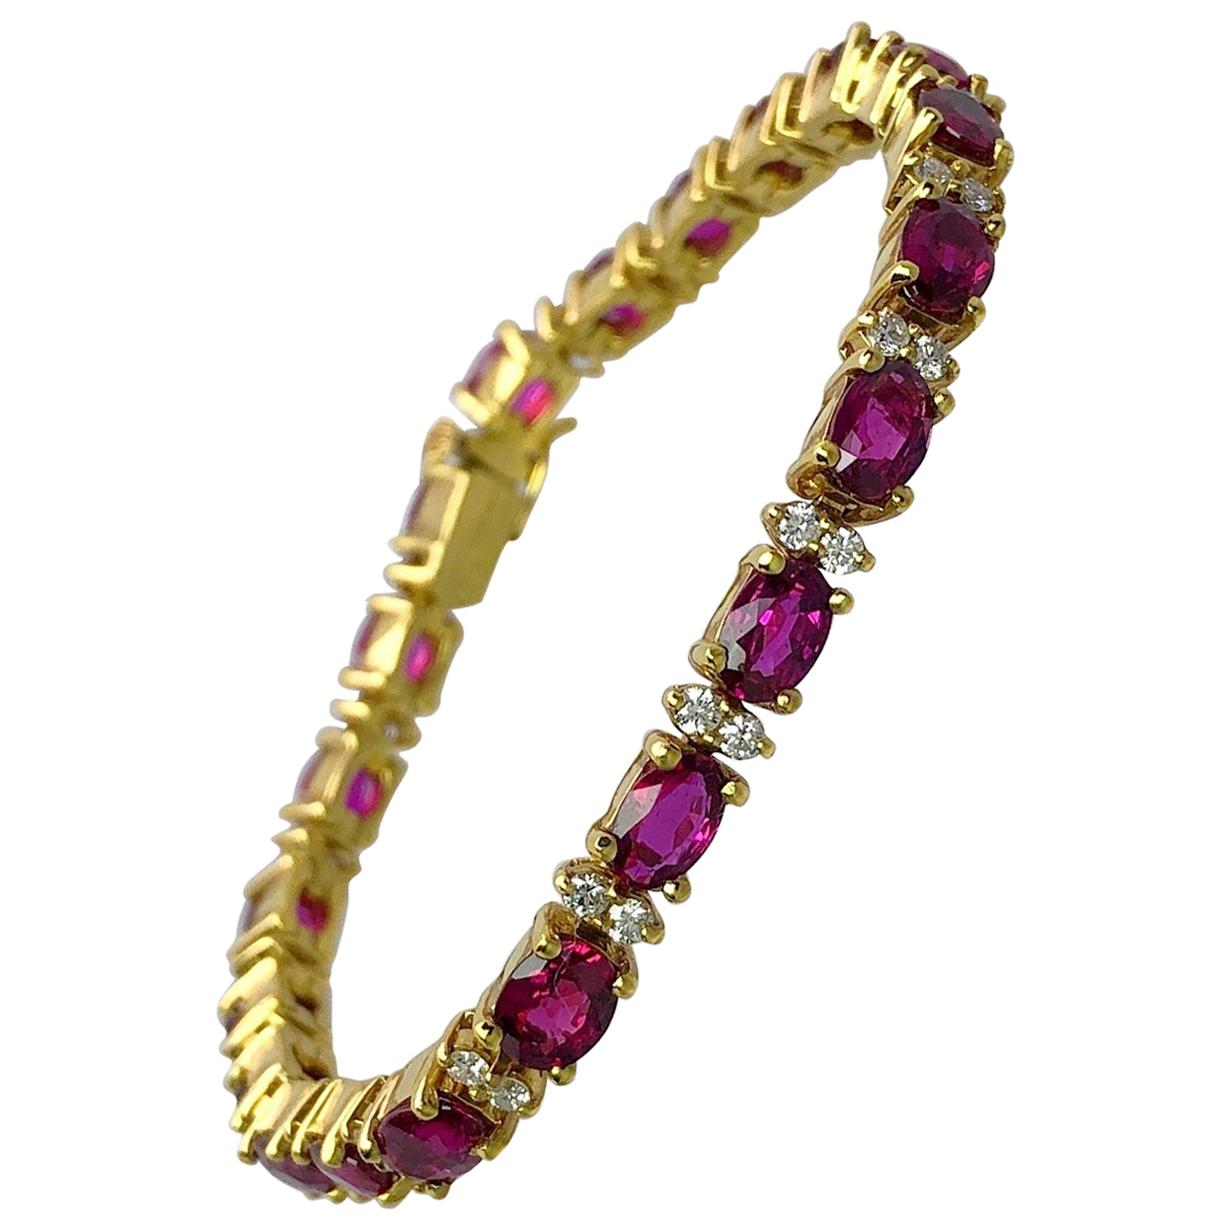 Cellini 18KT Yellow Gold, 11.36 Carat Oval Ruby and 1.10 Carat Diamond Bracelet